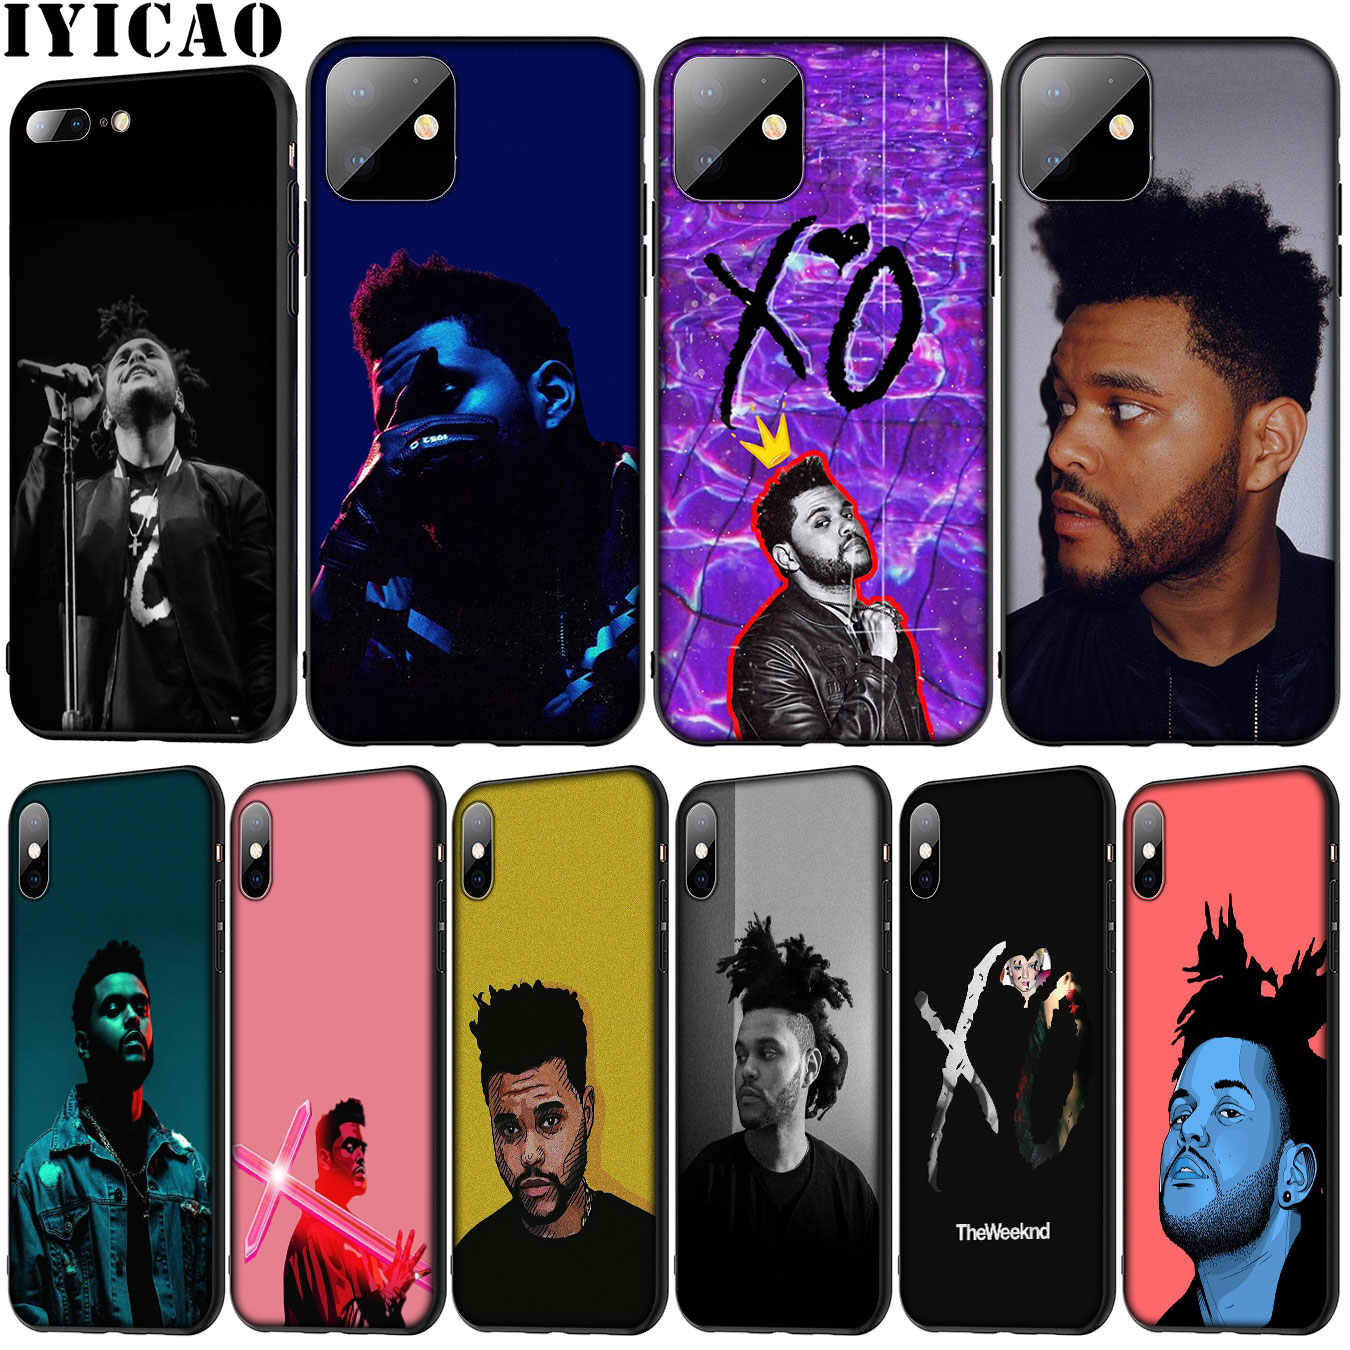 The Weeknd Keren Lembut Silicone Ponsel Case untuk iPhone XR X XS 11 Pro Max 5 5S SE 6 6S 7 7 Plus Tpu Cover